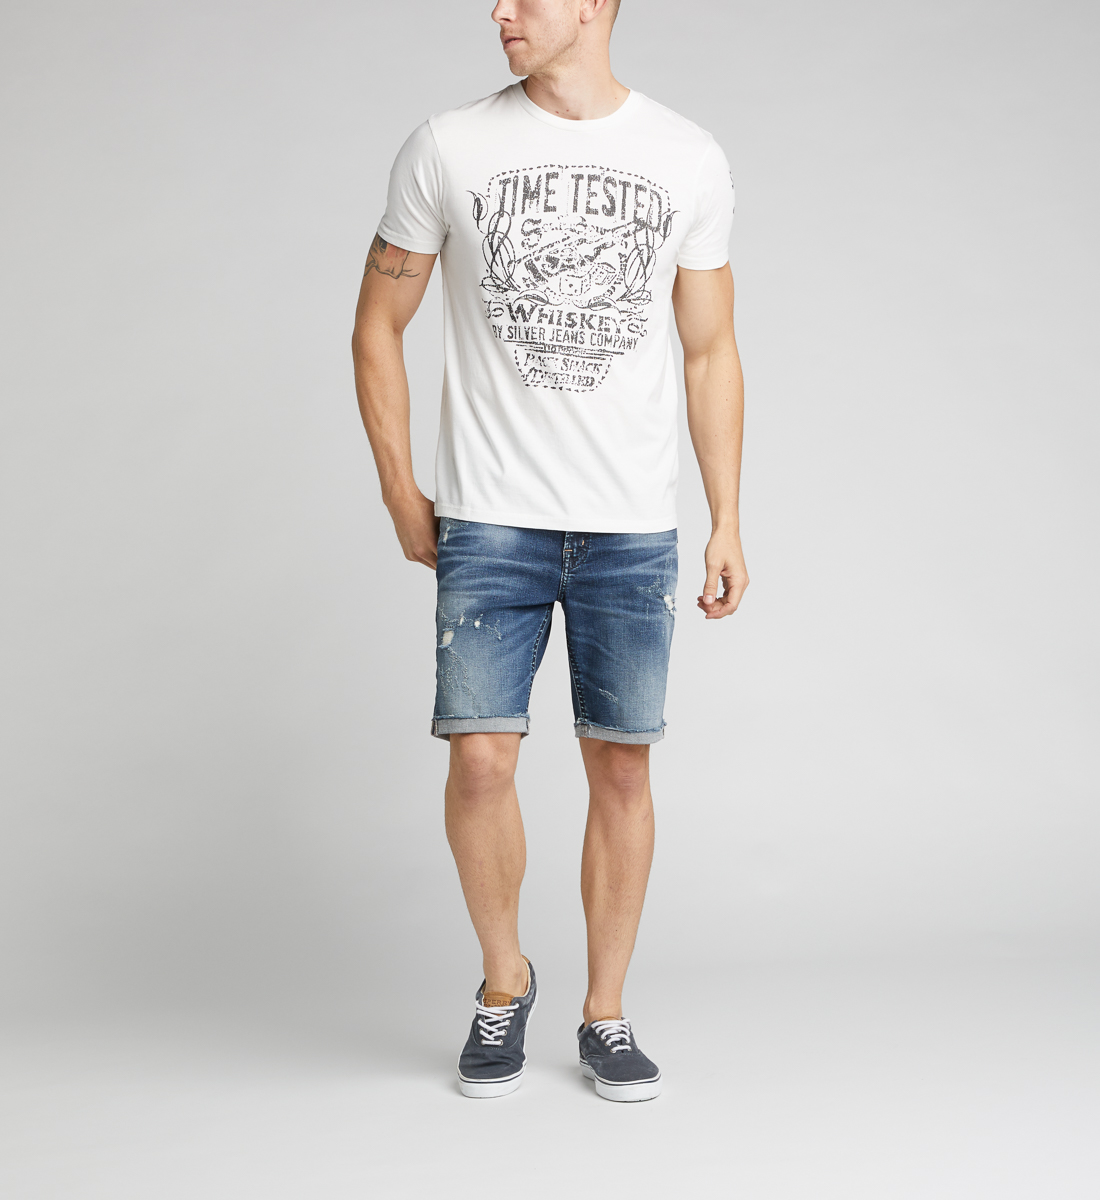 Dax Short-Sleeve Graphic Tee,Warm White Back